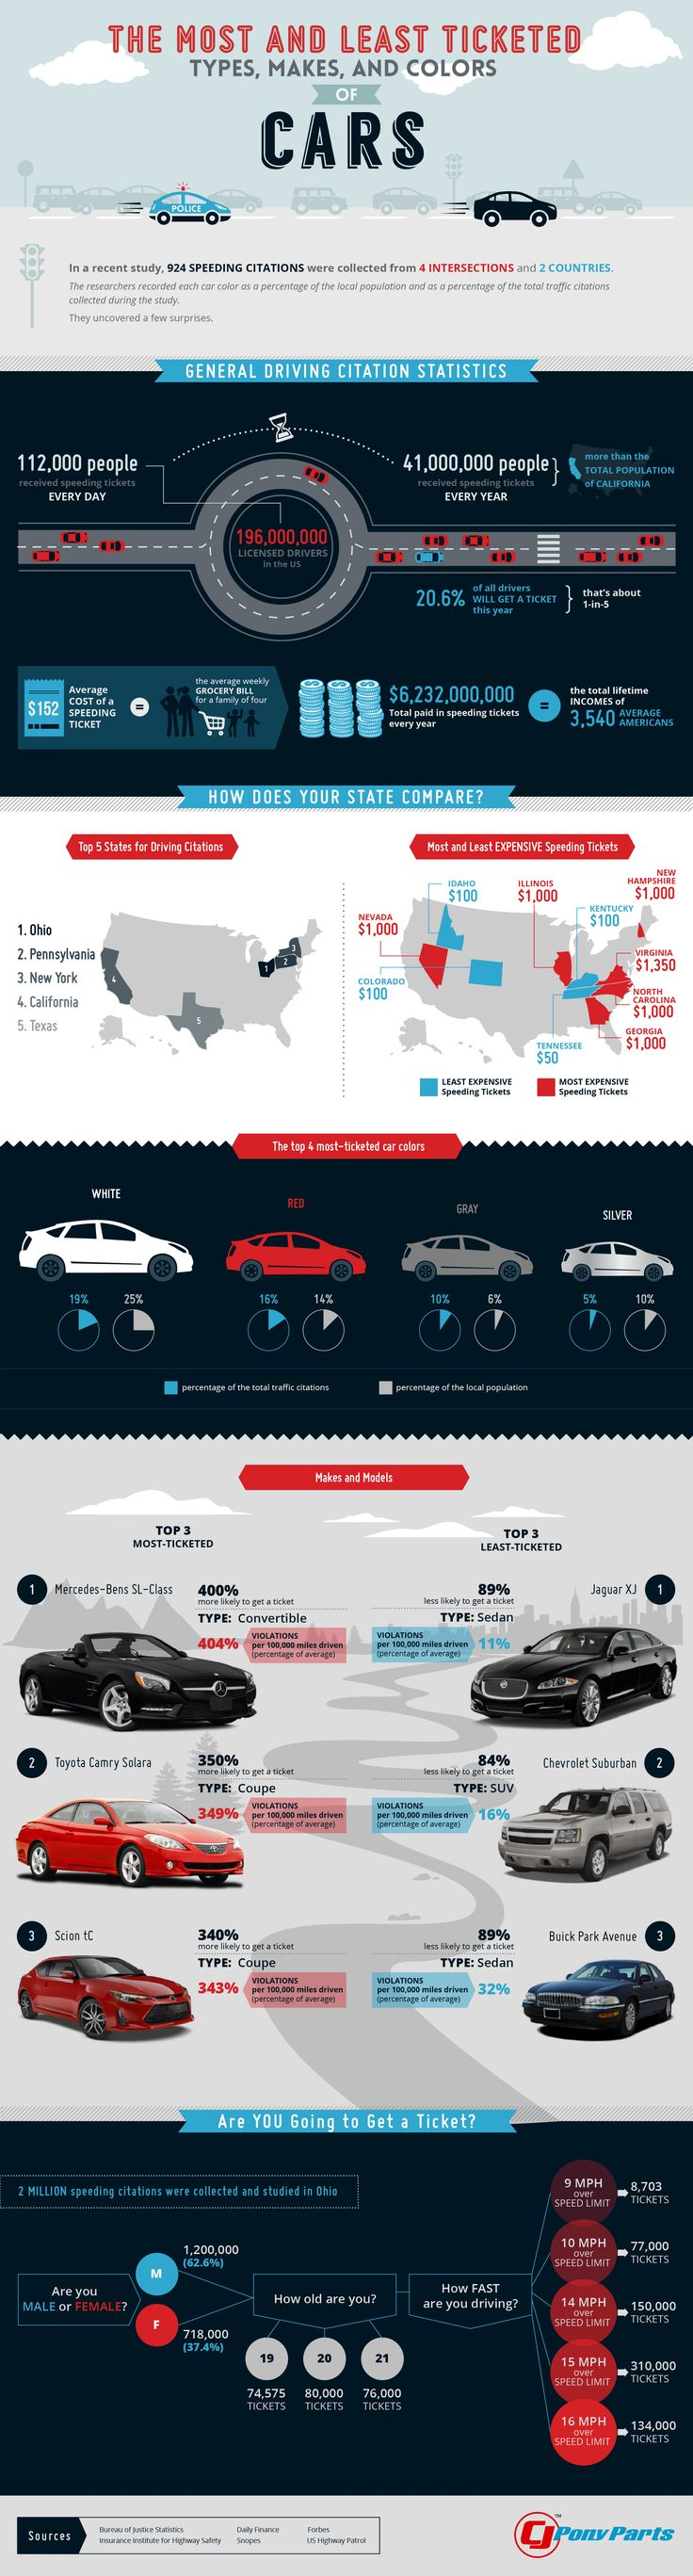 Most and least ticketed types makes and colors of cars ford mustang parts blog